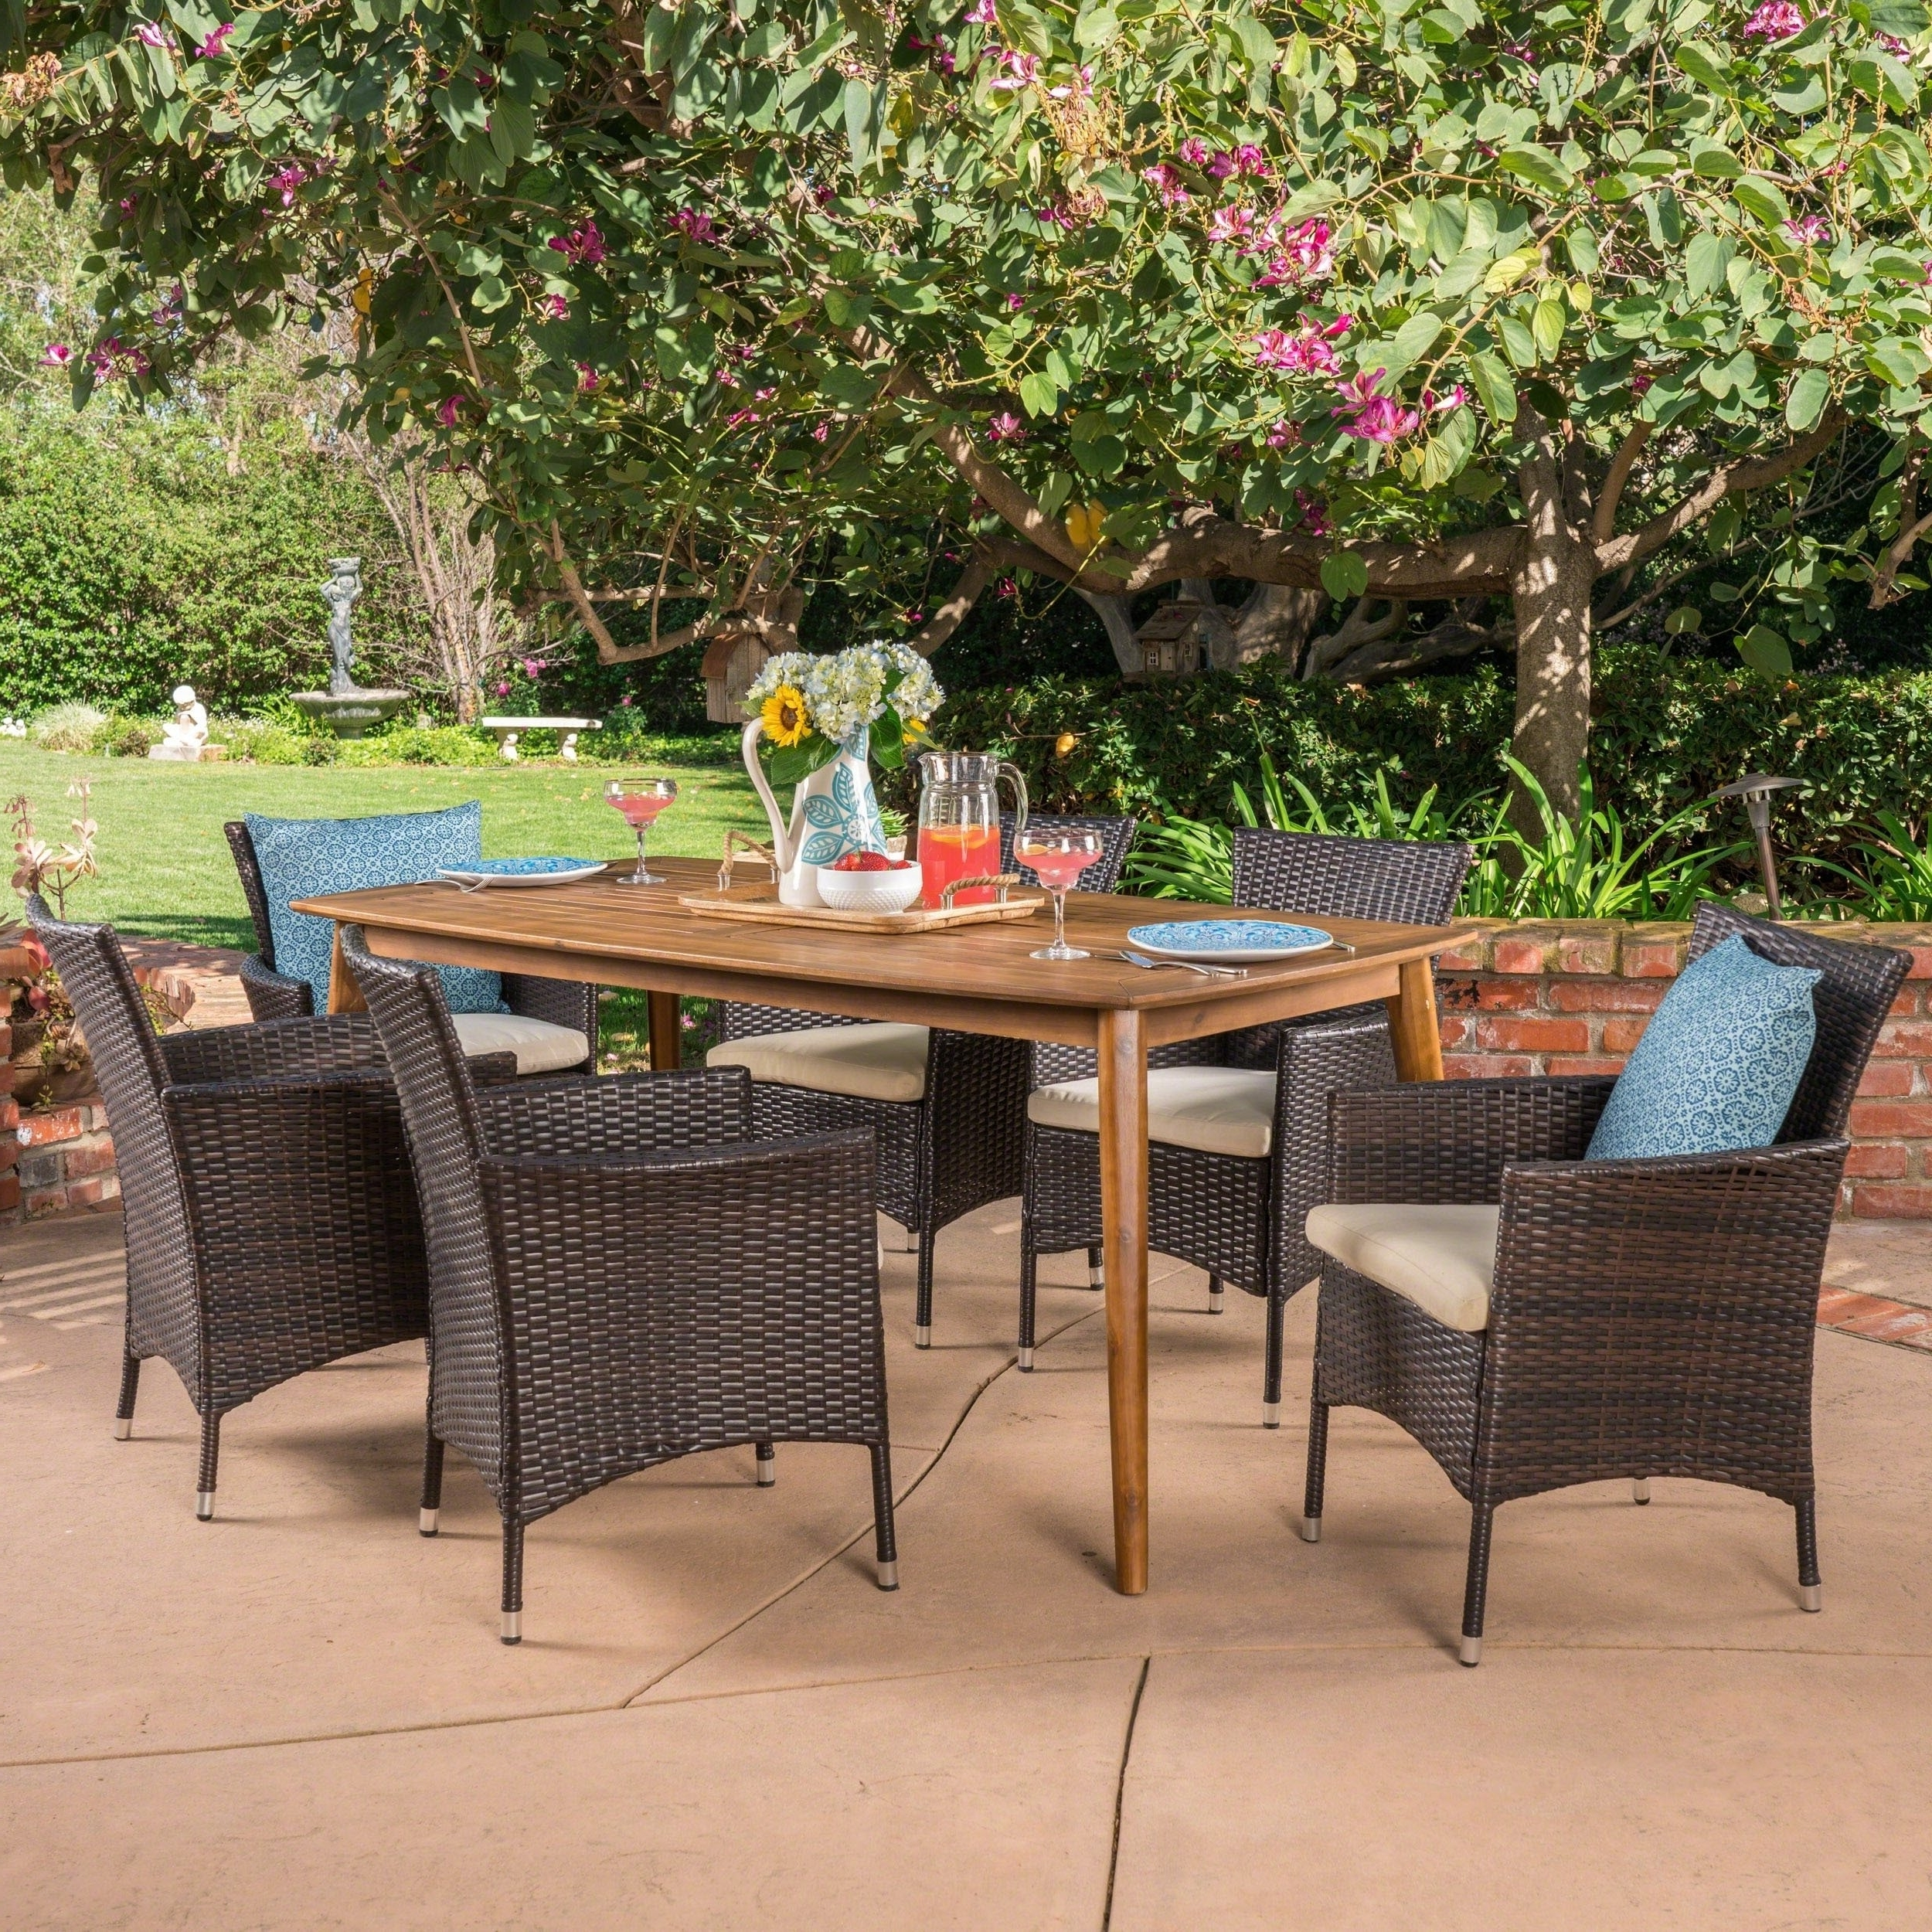 Jaxon 7 Piece Rectangle Dining Sets With Wood Chairs with regard to Preferred Shop Jaxon Outdoor 7 Piece Multibrown Pe Wicker Dining Set With